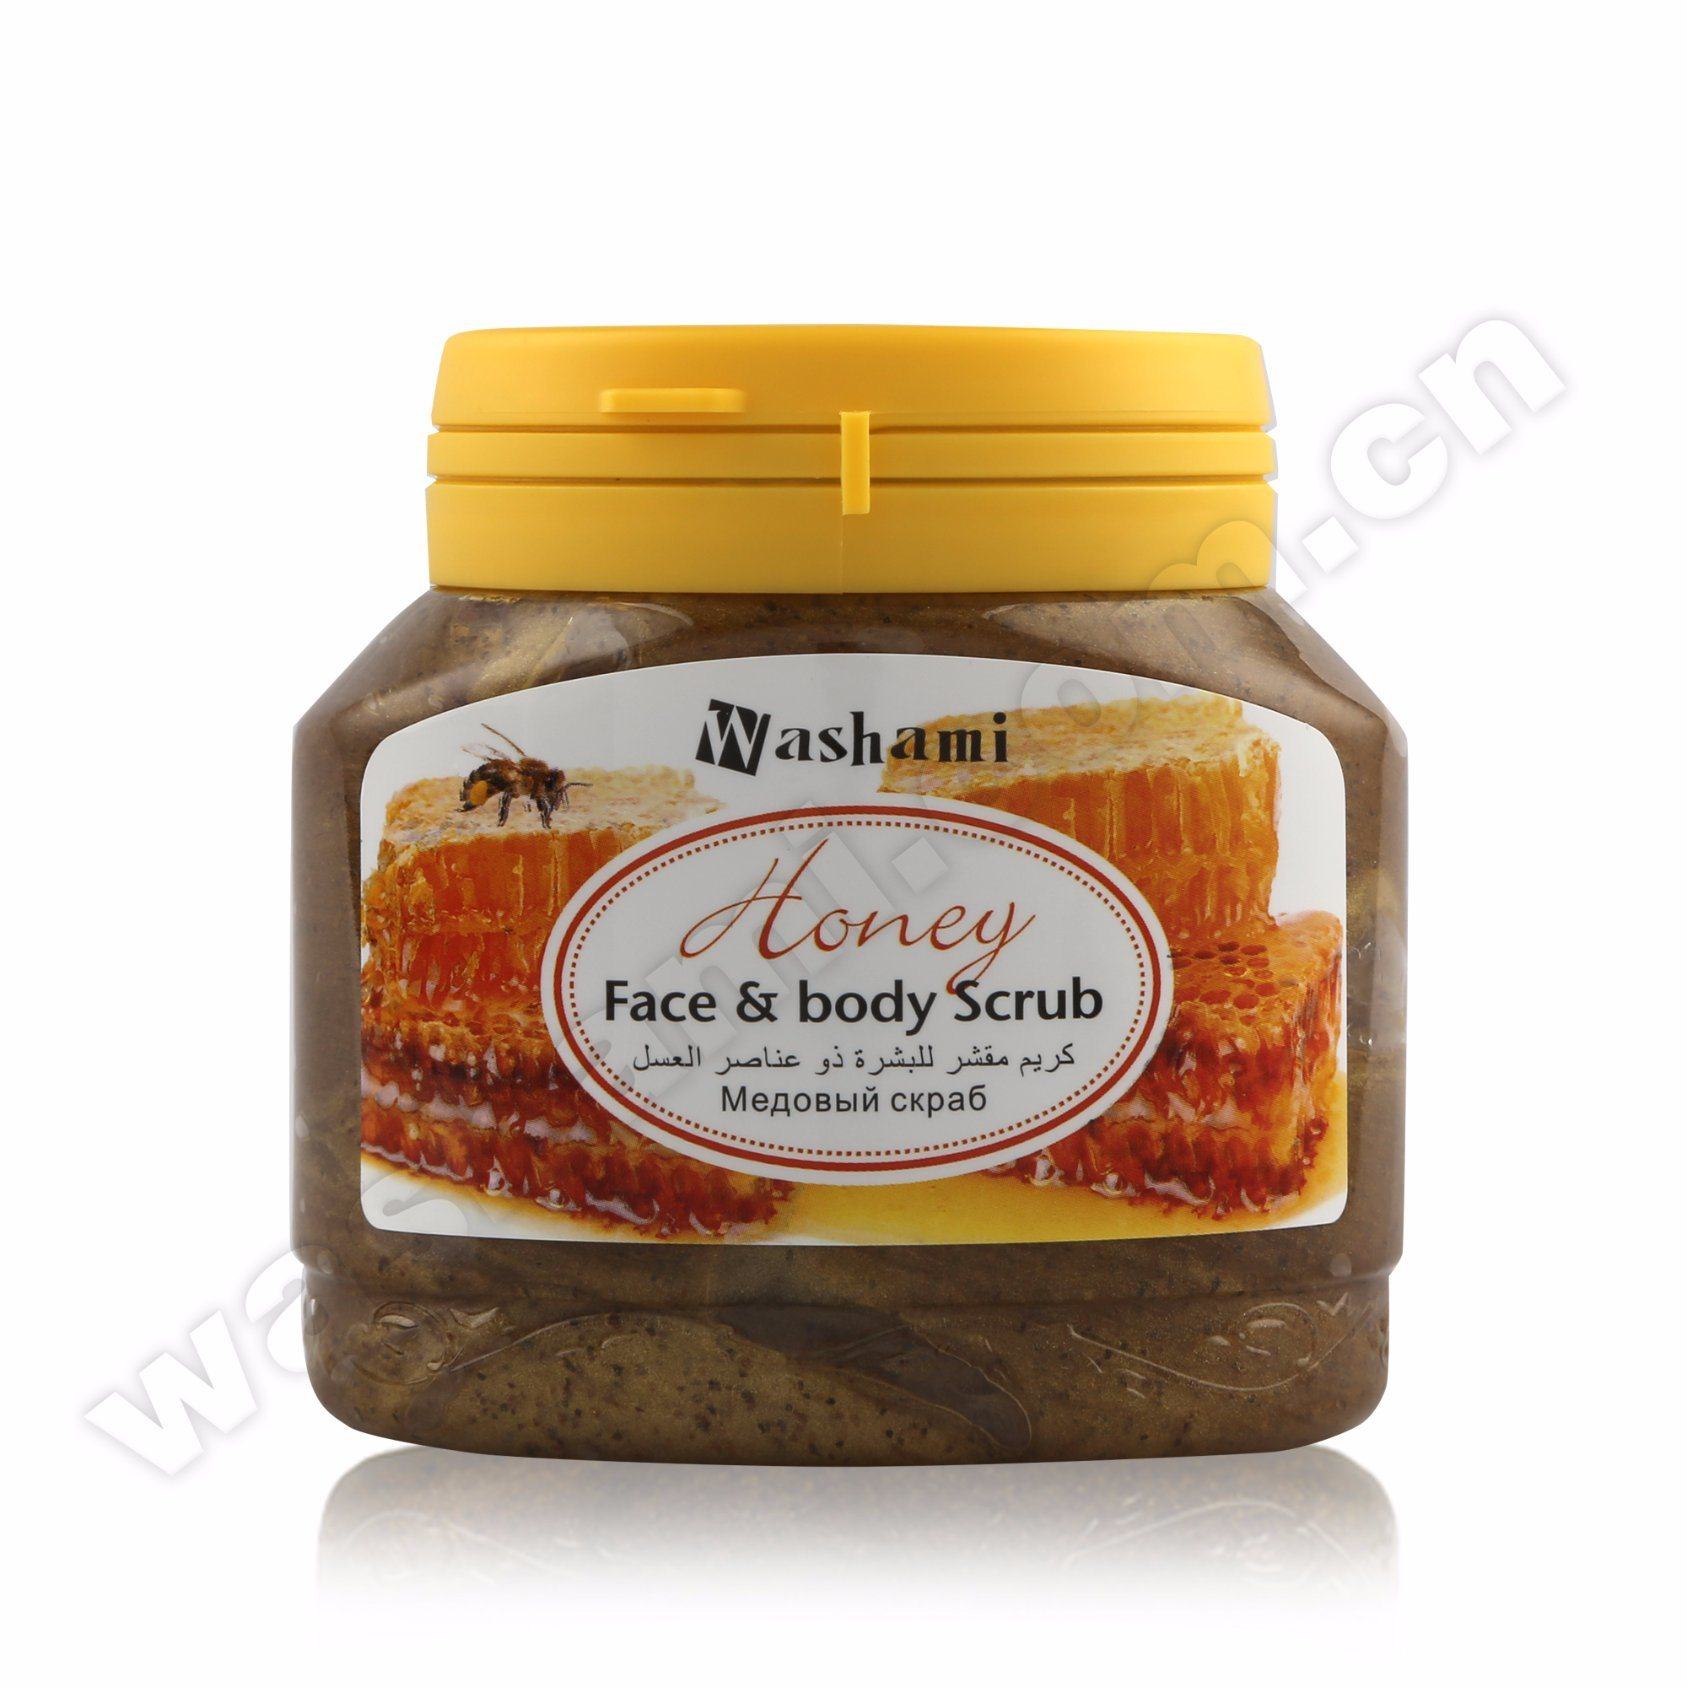 Washami Organic Natural Plant Essence Whitening Body Scrub with Pecan Shell Powder